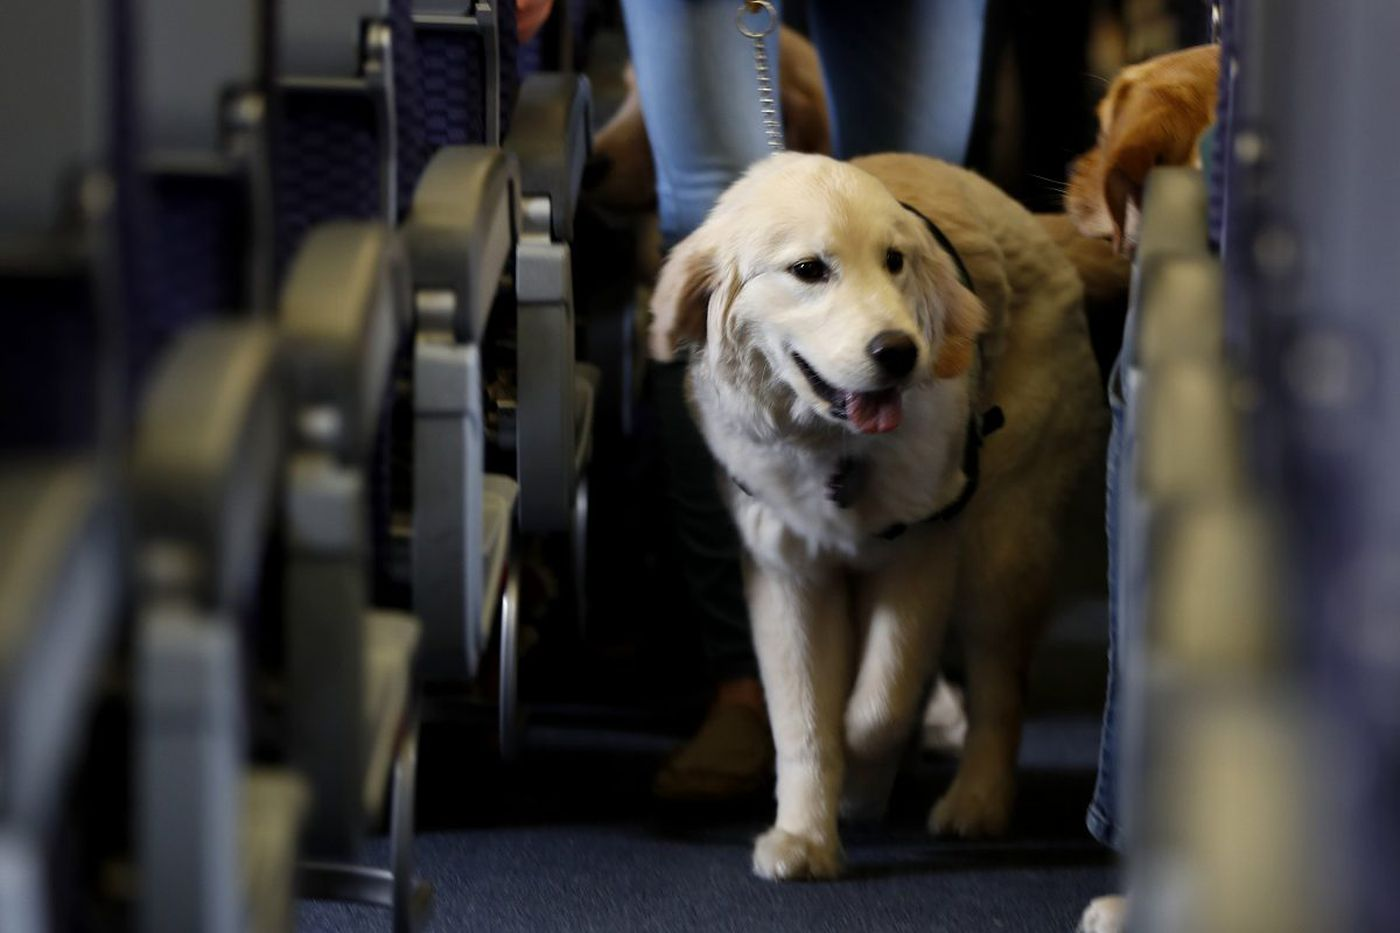 Fur and fury at 40,000 feet as more people bring animals on planes